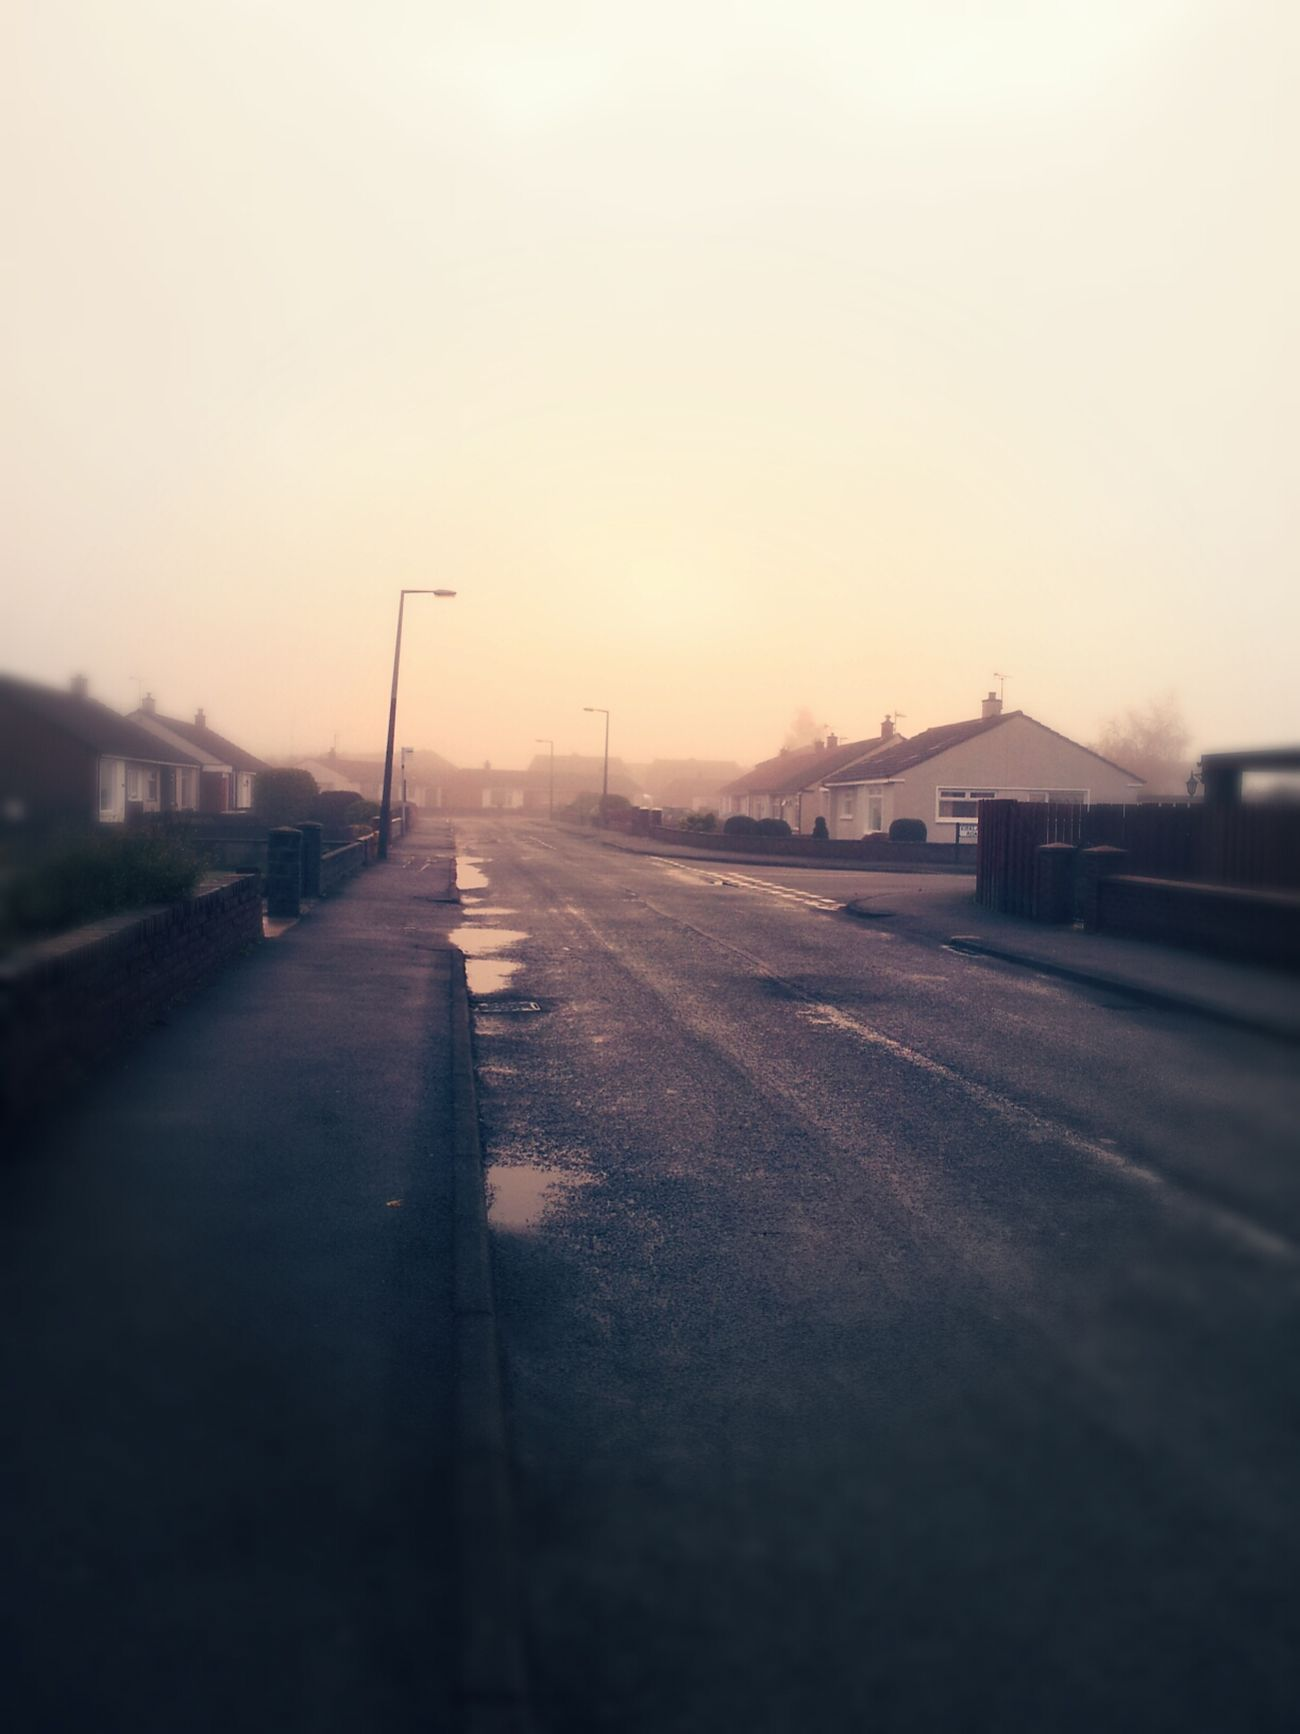 Tad misty on the daily walk this morning. EyeEm Best Shots Nature_collection Eye4photography  Taking Photos